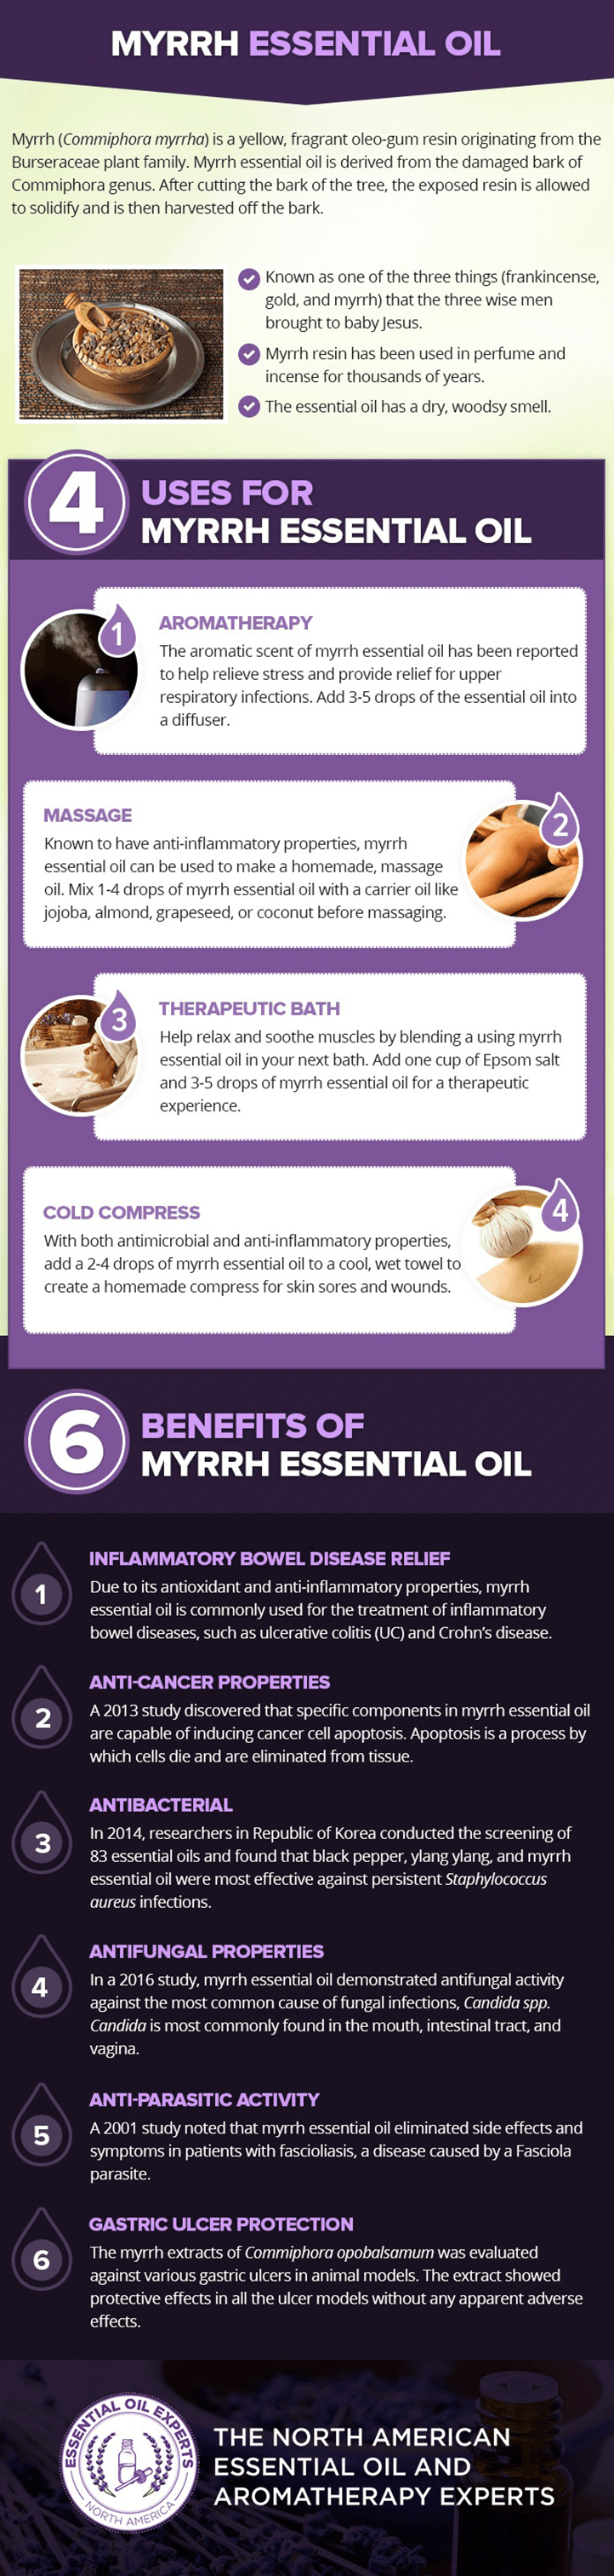 Myrrh essential oil benefits and uses